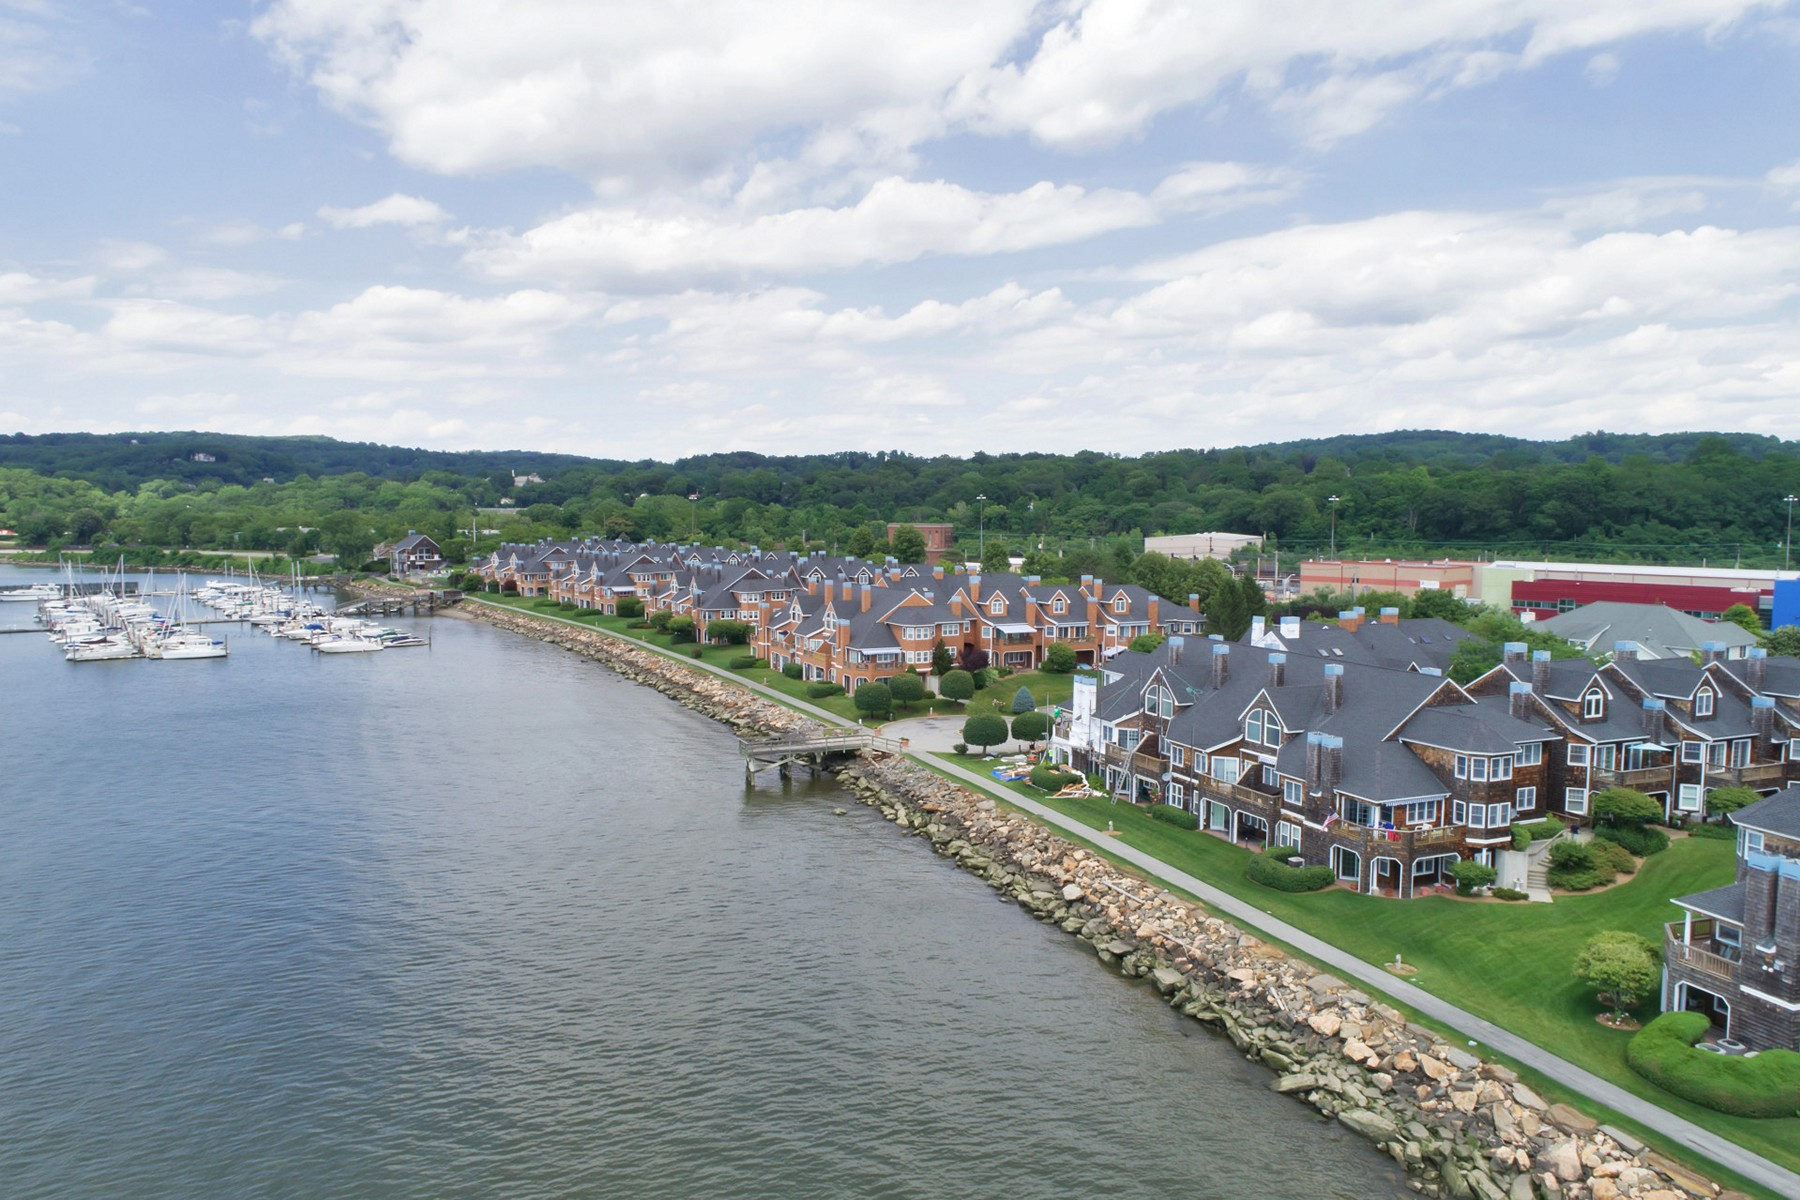 Townhouse for Sale at Waterfront 2 Bedroom Townhome 611 Half Moon Bay Drive Croton On Hudson, New York 10520 United States